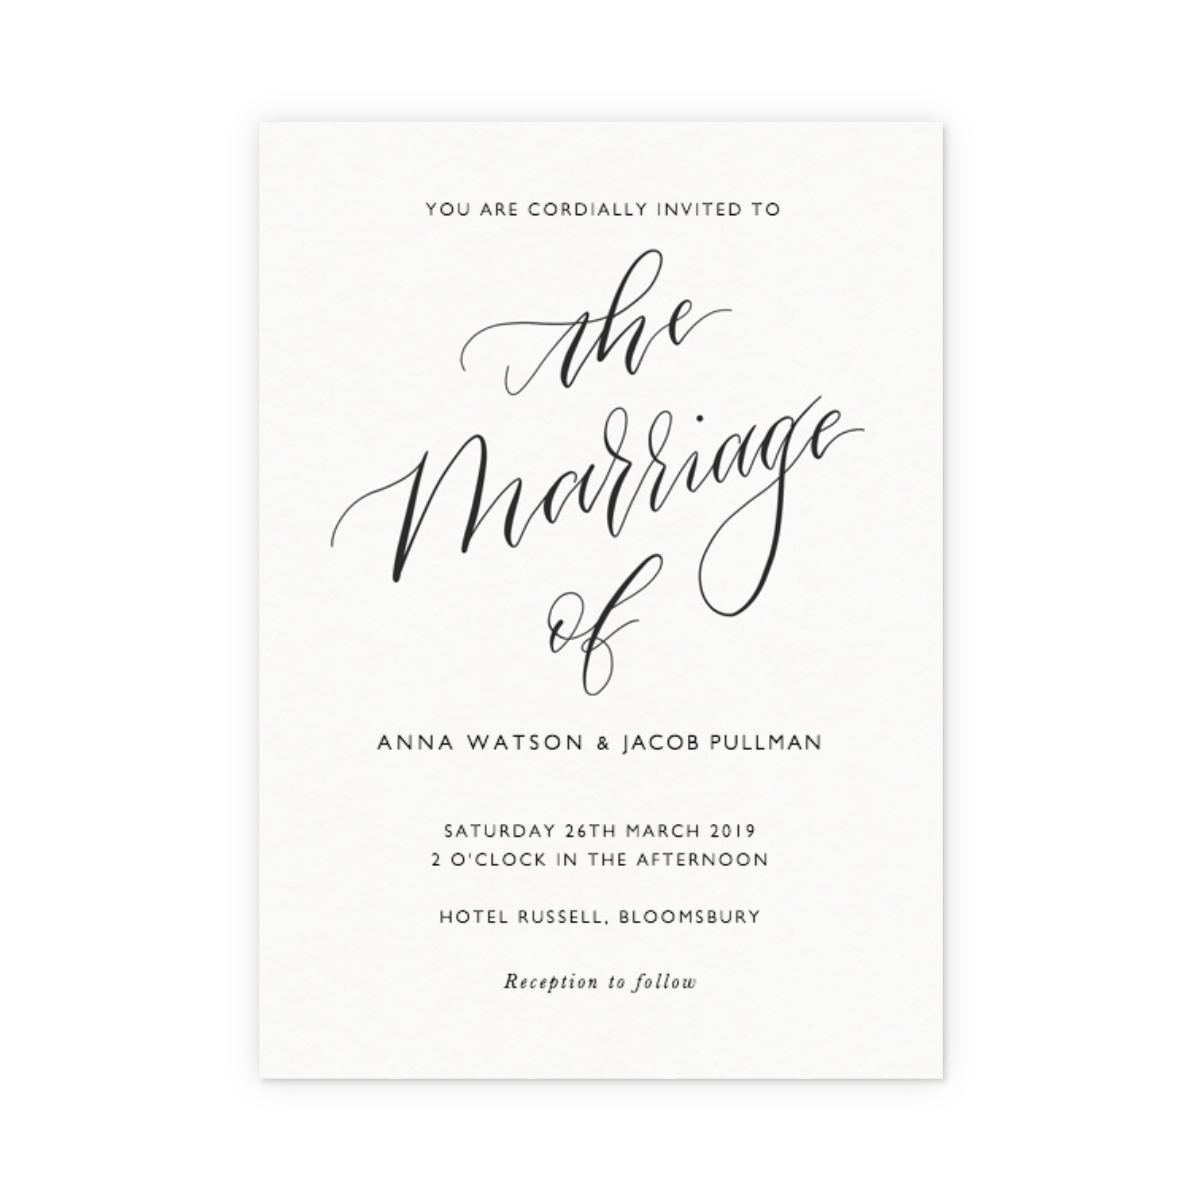 Https%3a%2f%2fwww.papier.com%2fproduct image%2f8897%2f4%2fthe marriage of calligraphy 2227 front 1532444669.png?ixlib=rb 1.1